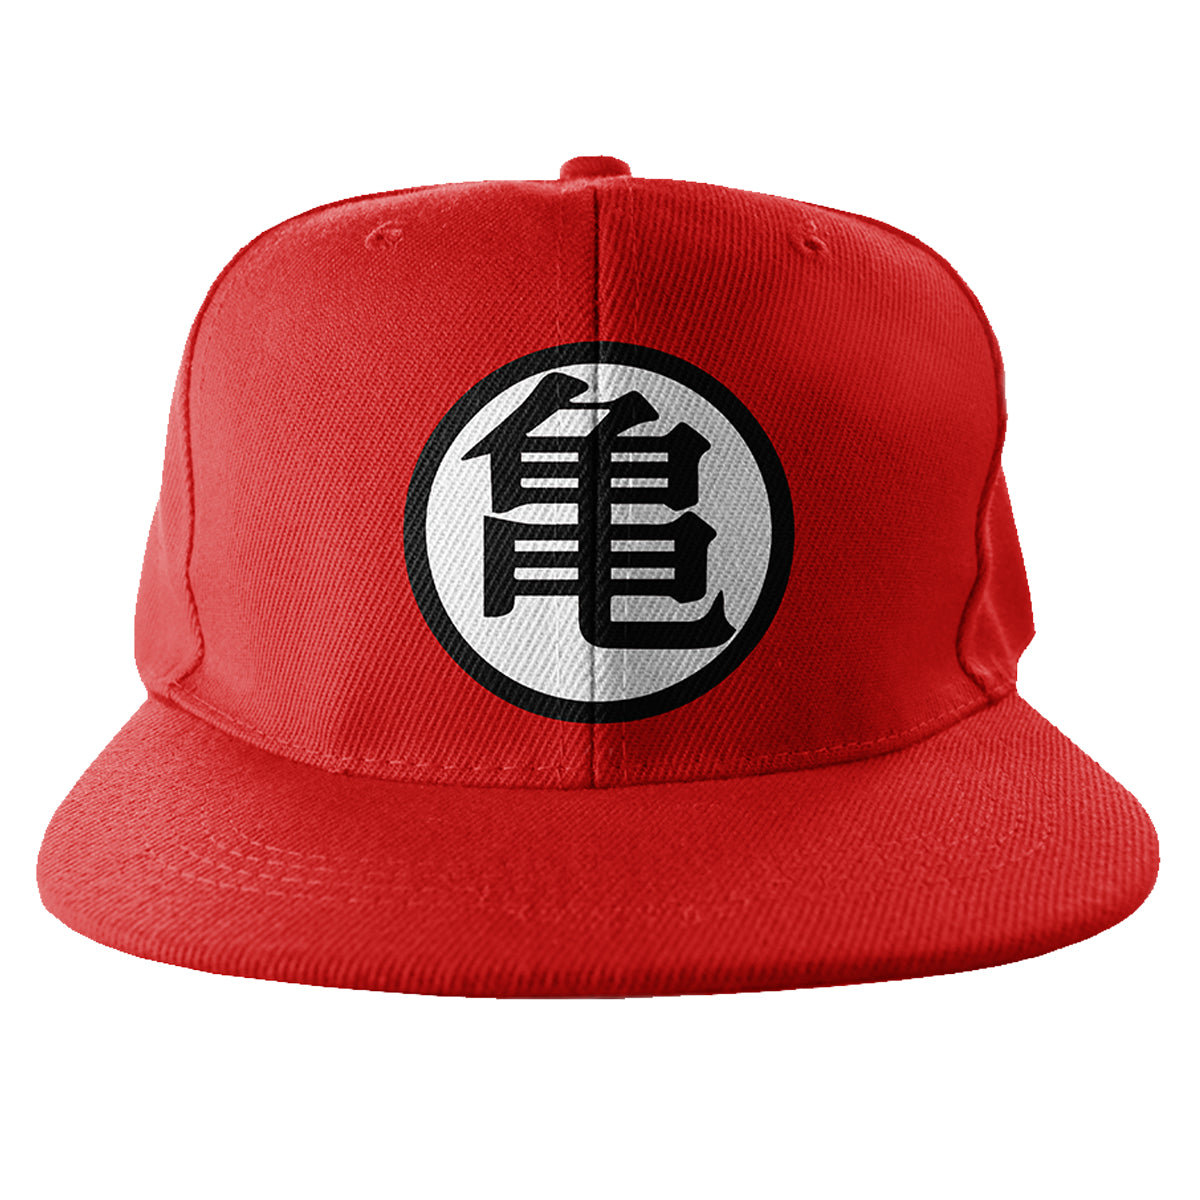 Turtle Hermit - Trendy Gear-Yupoong Wool Blend Snapback / Red-Embroidery - 4